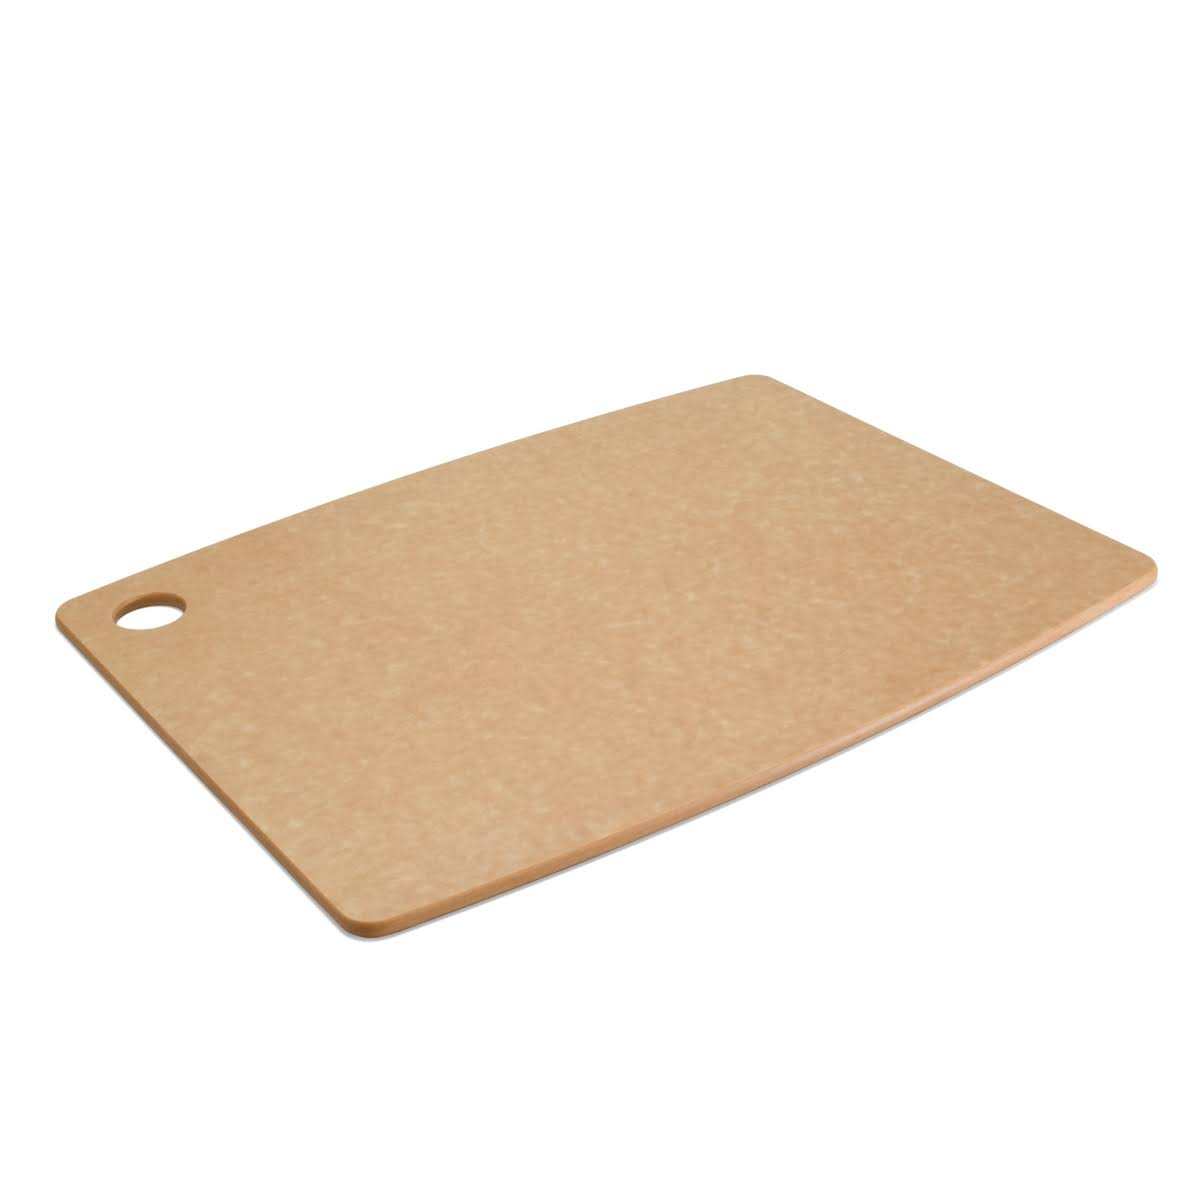 "Epicurean Natural Kitchen Cutting Board - 15"" x 11"""